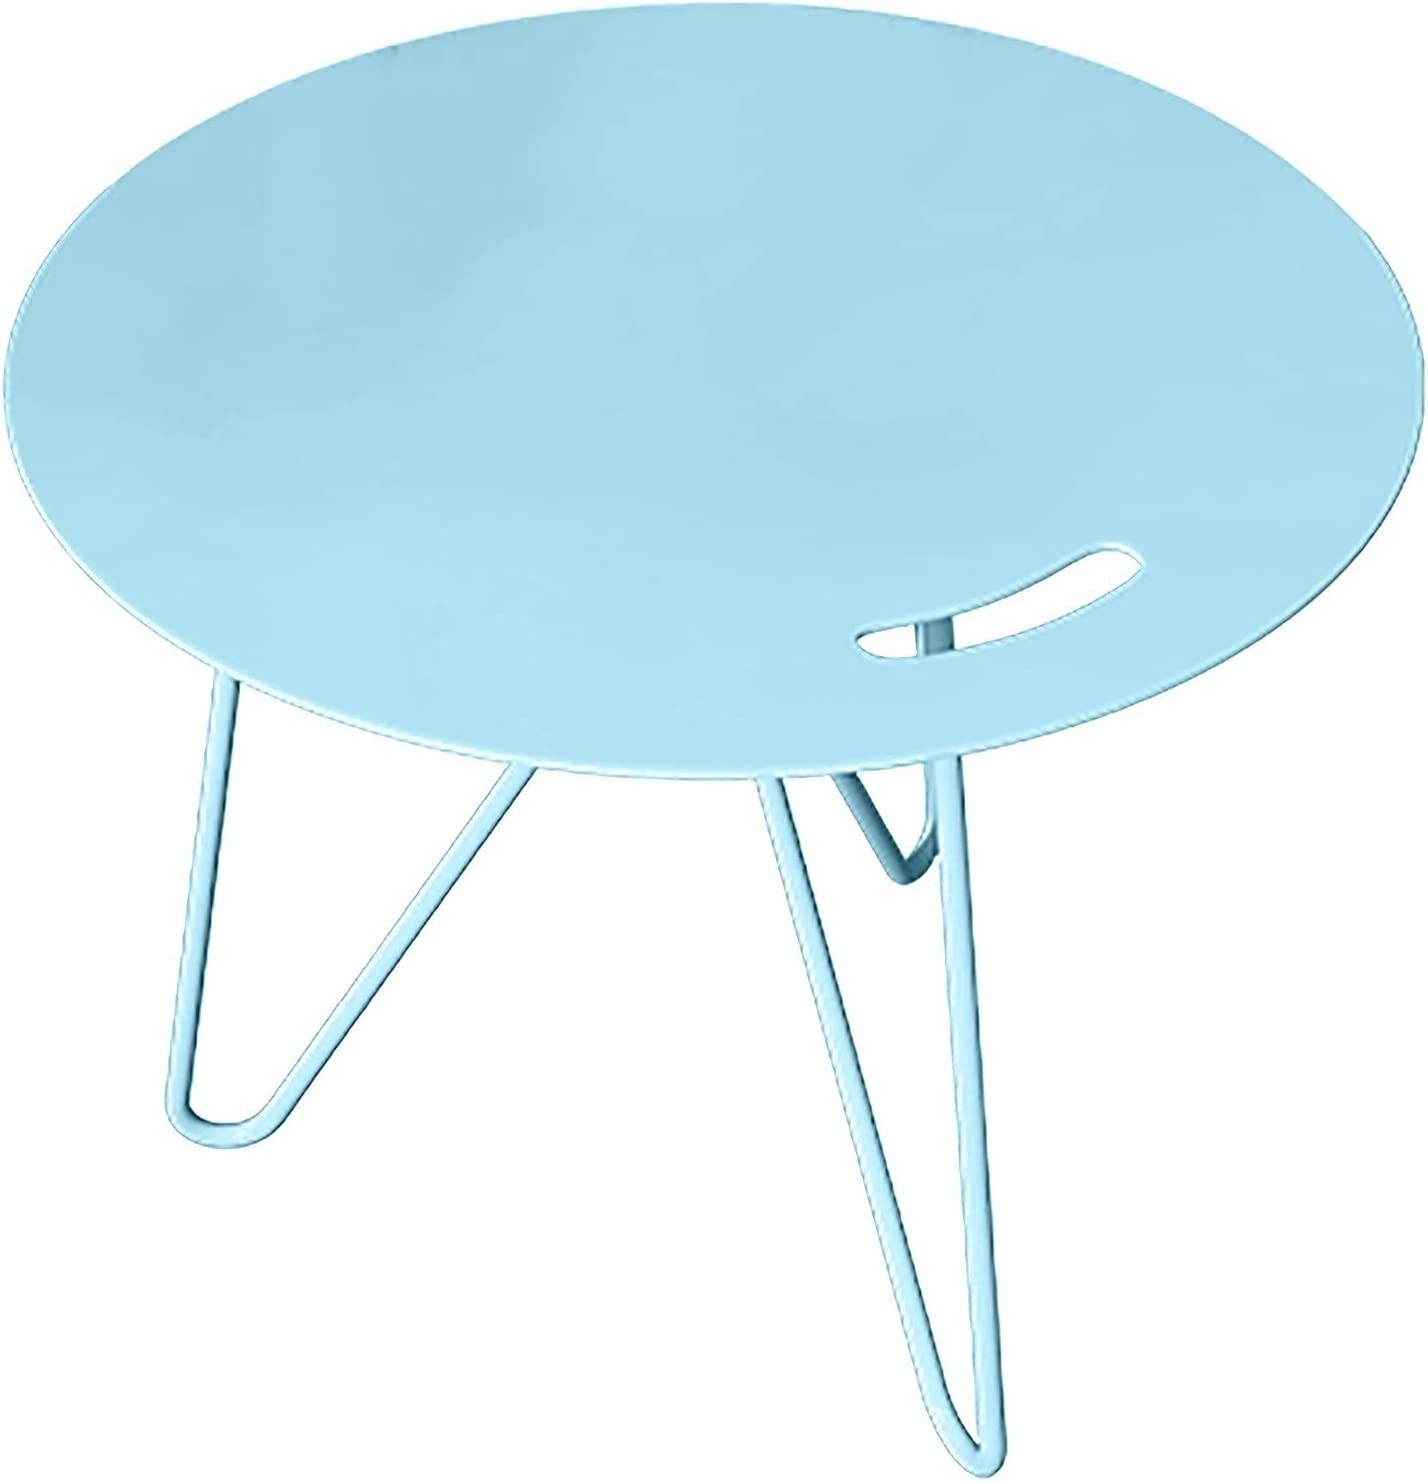 ZJMK Side Max 86% OFF Table for Housewarming Modern Gift End 55% OFF Round So